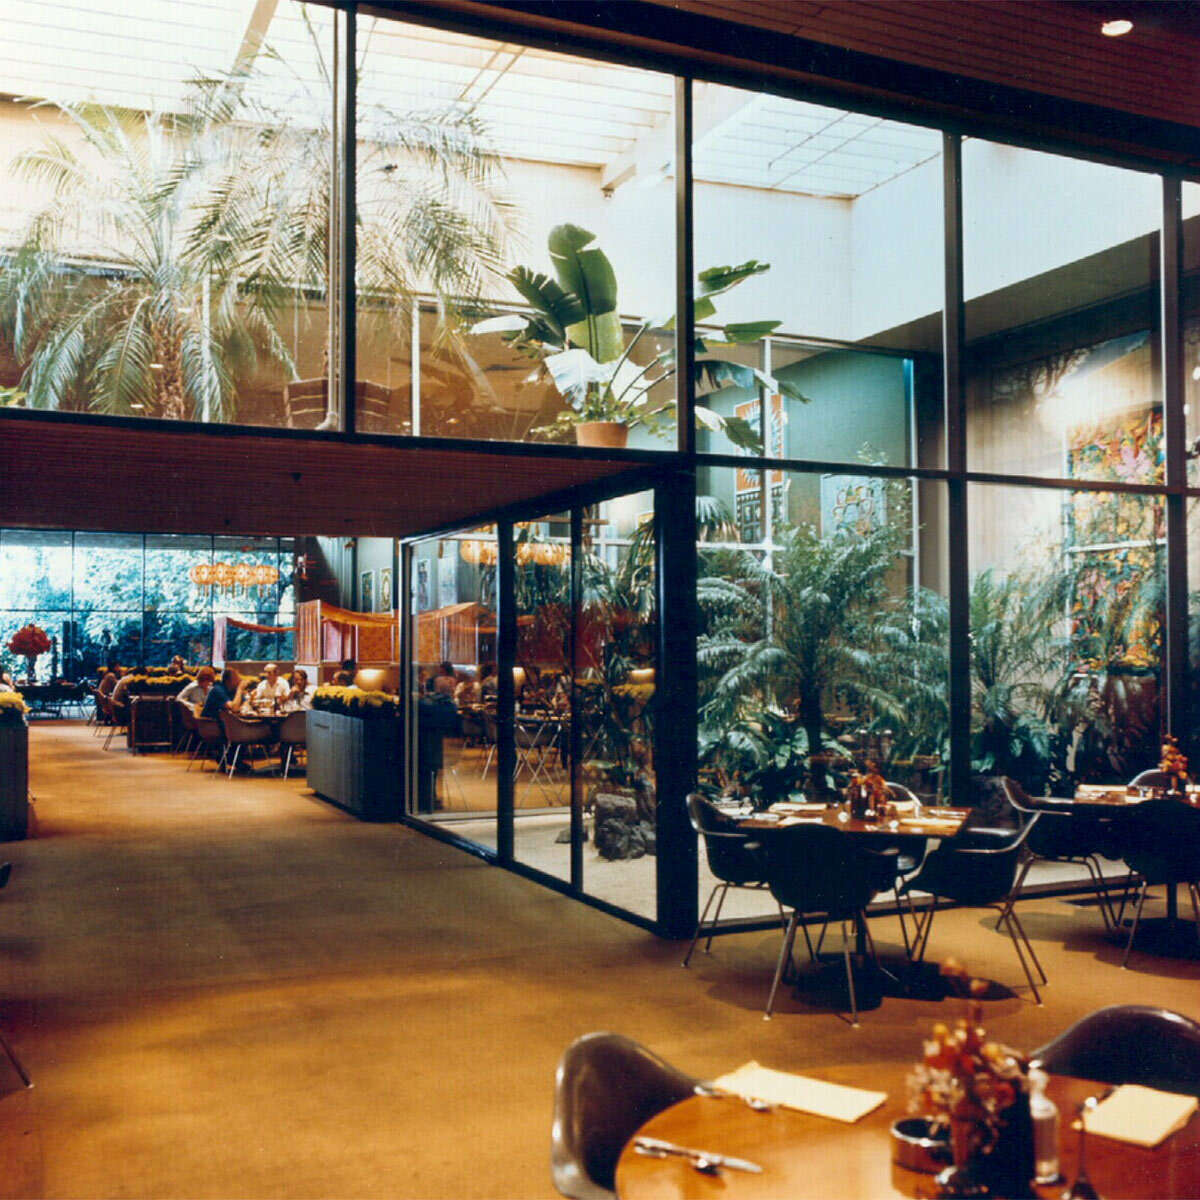 A view of the glass aviary inside the Nut Tree Restaurant in Vacaville. The restaurant closed in 1996 with the rest of the business after a family feud.